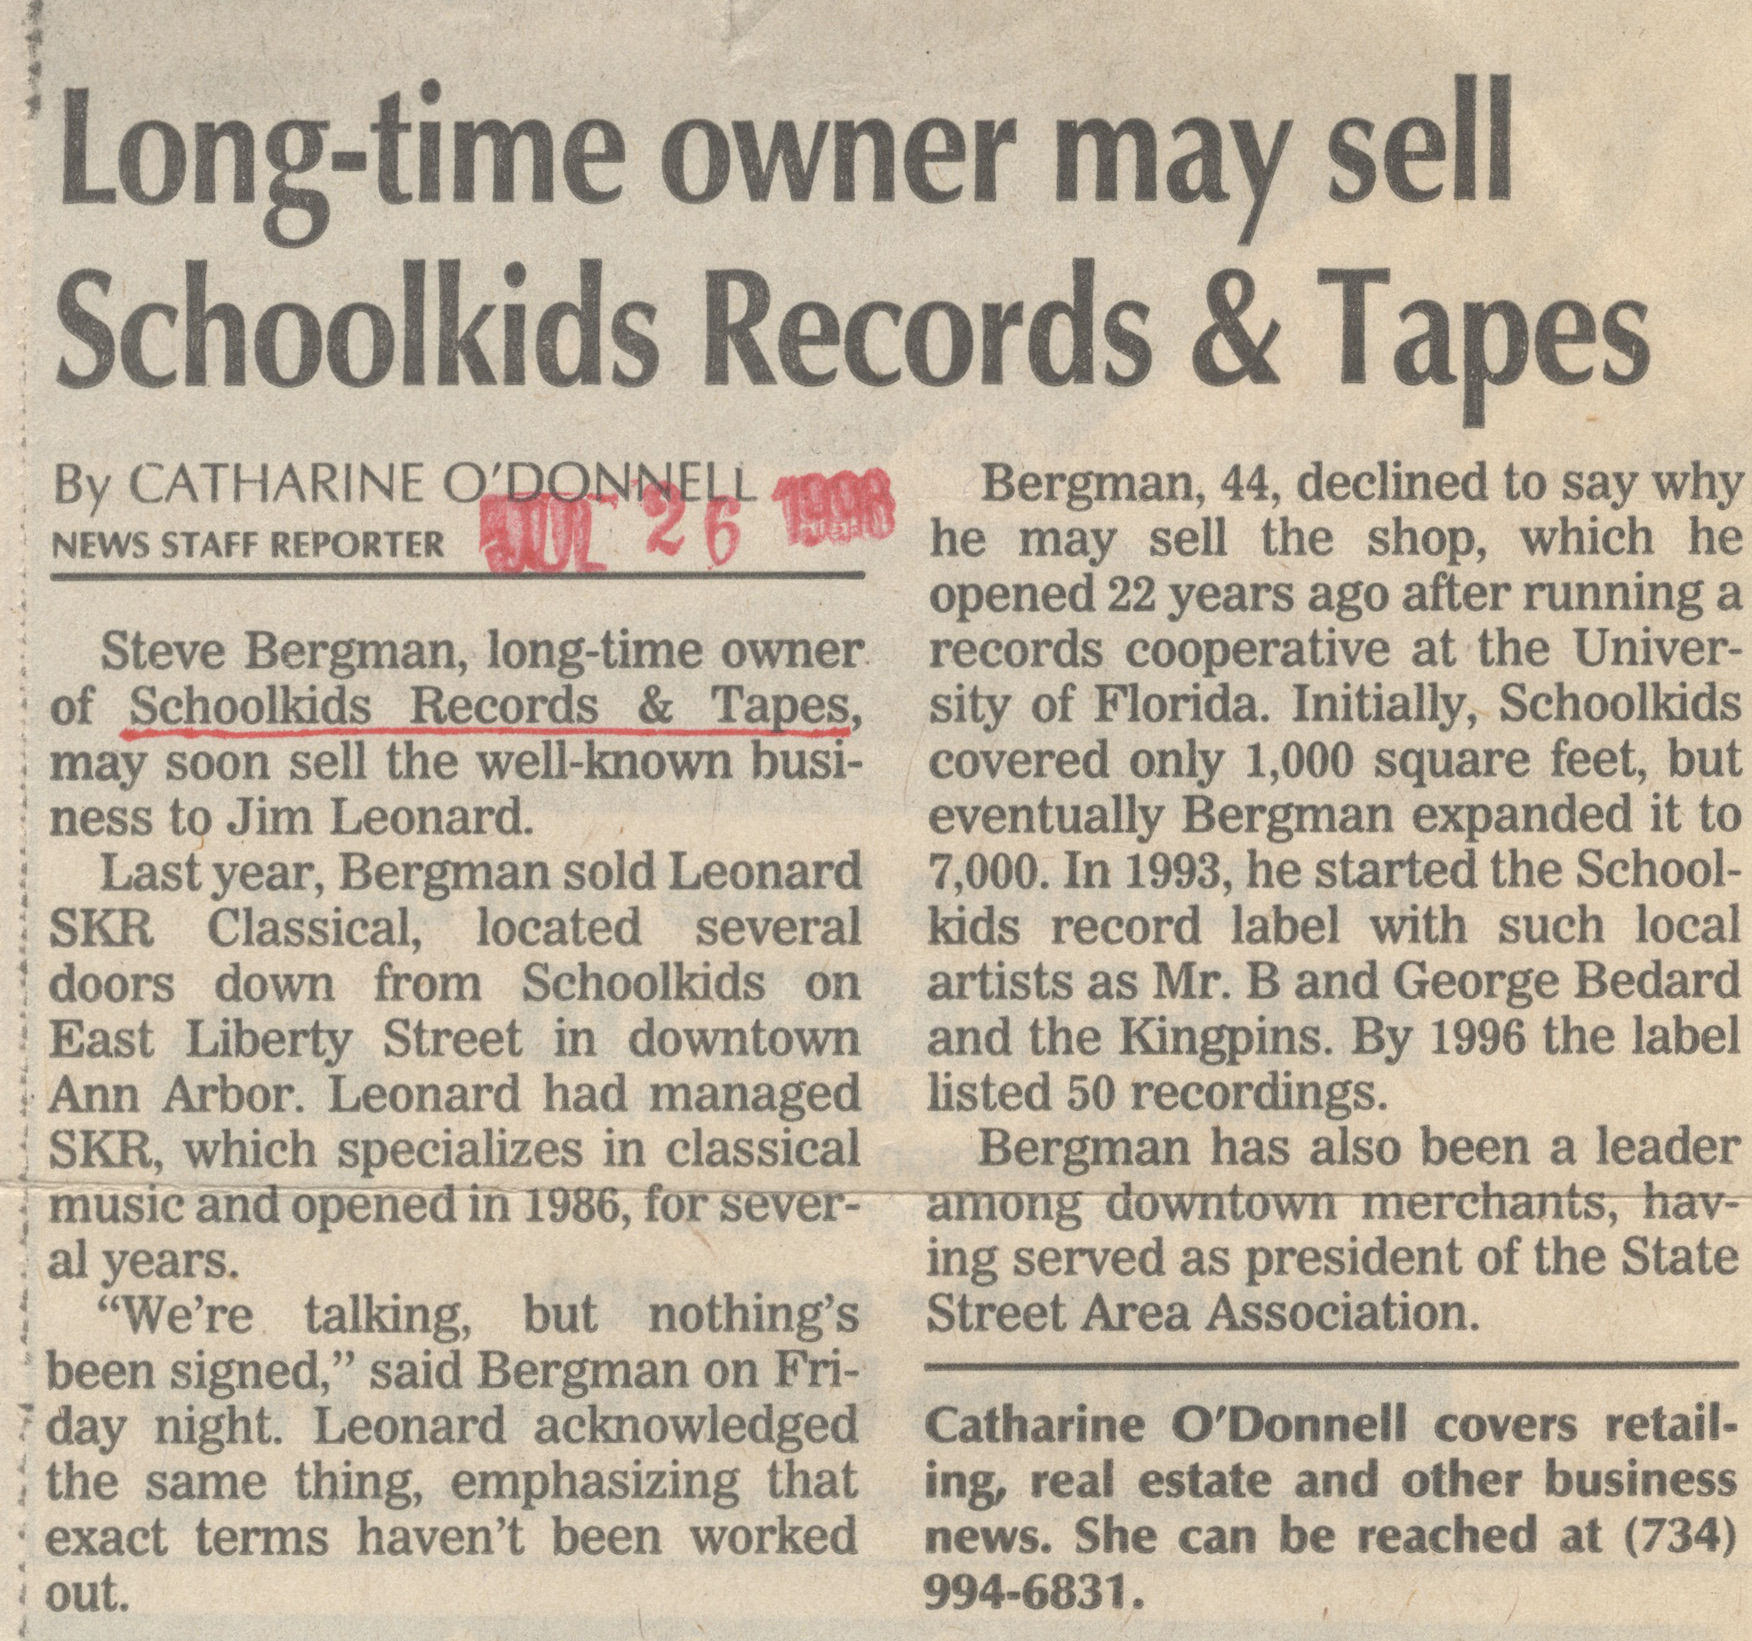 Long-time Owner May Sell Schoolkids Records & Tapes image